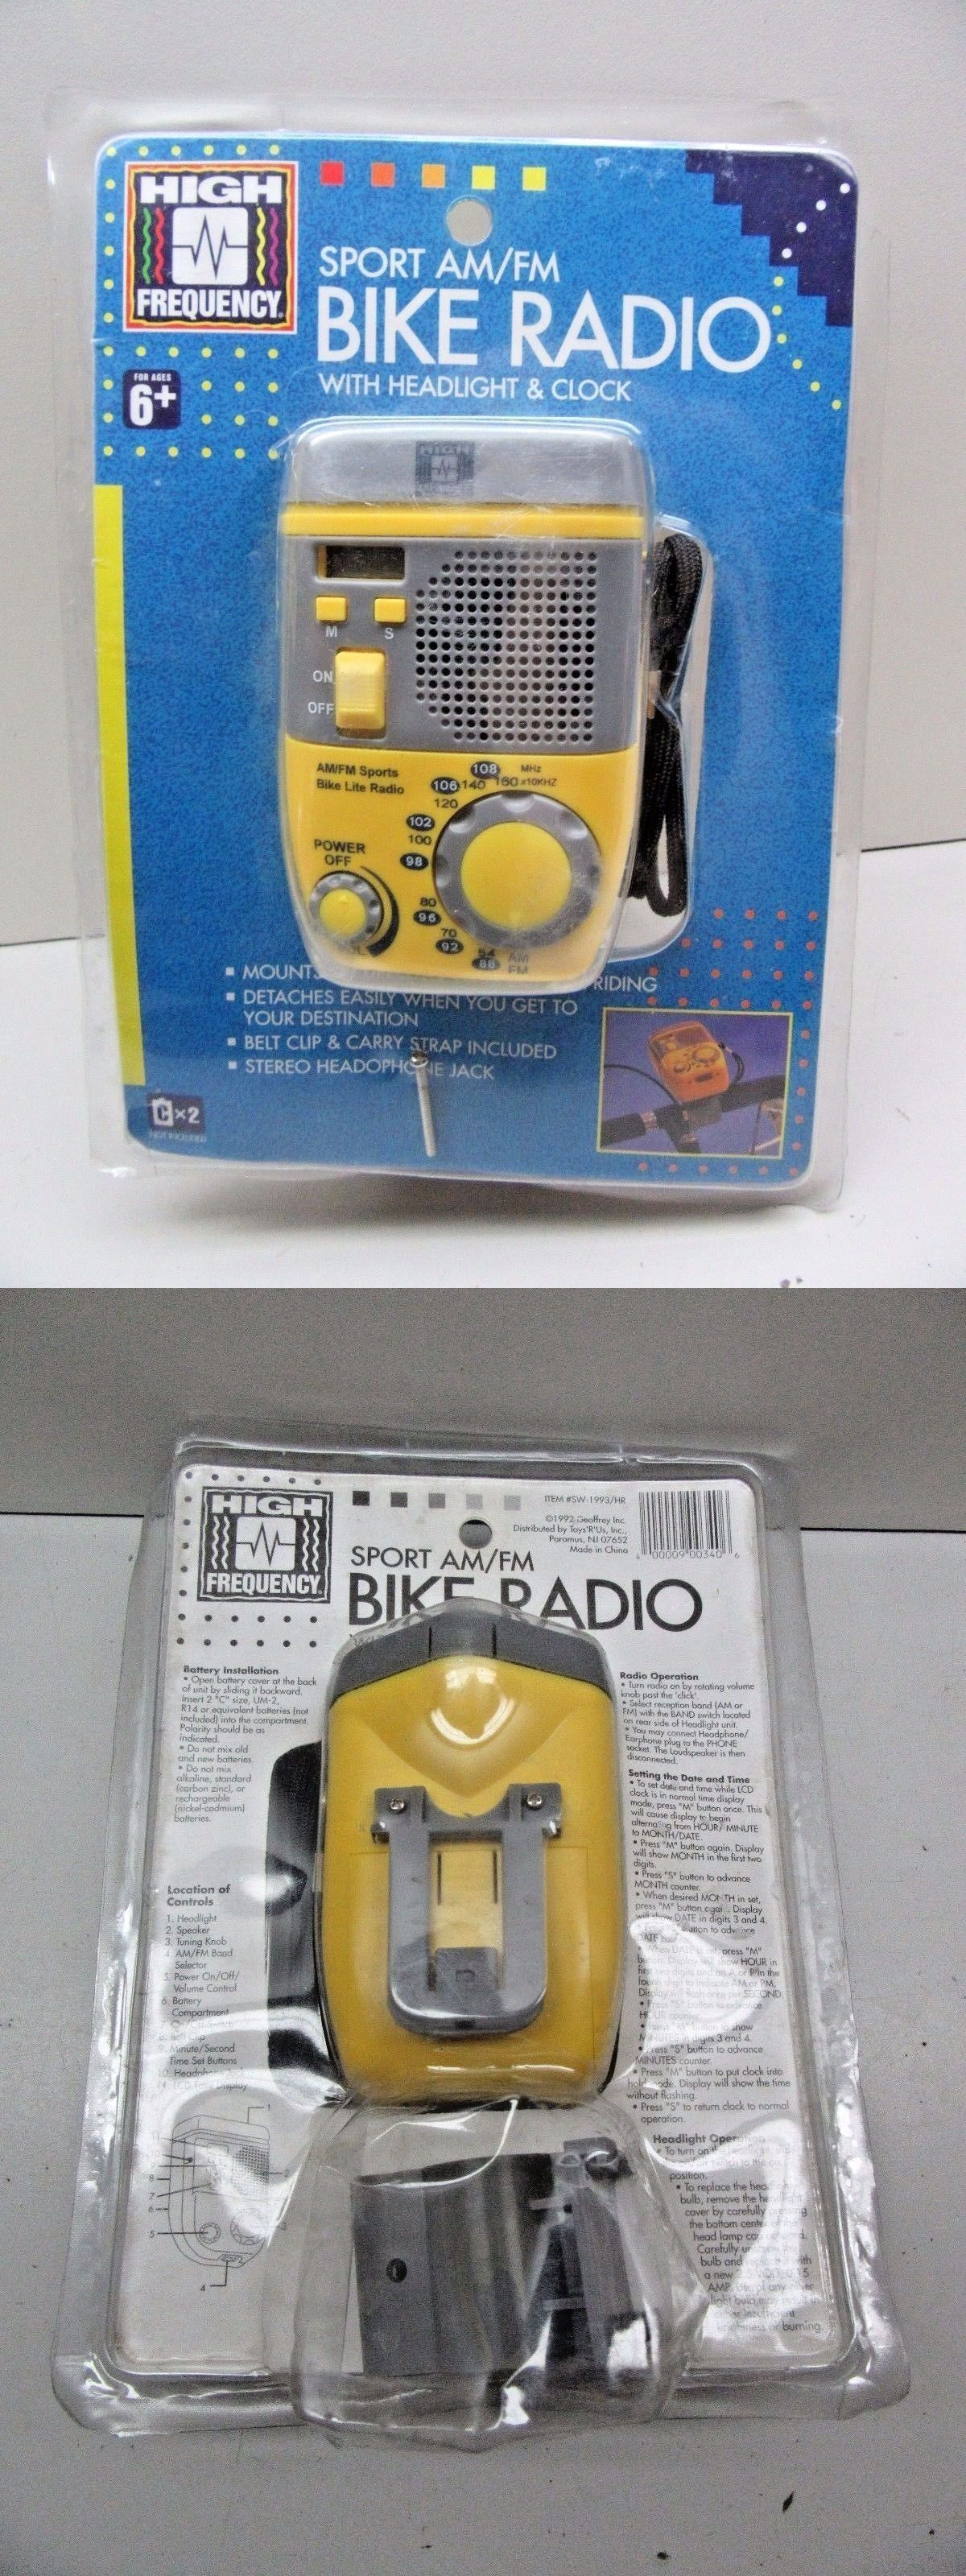 Other Bicycle Electronics 177843 High Frequency Sport Am